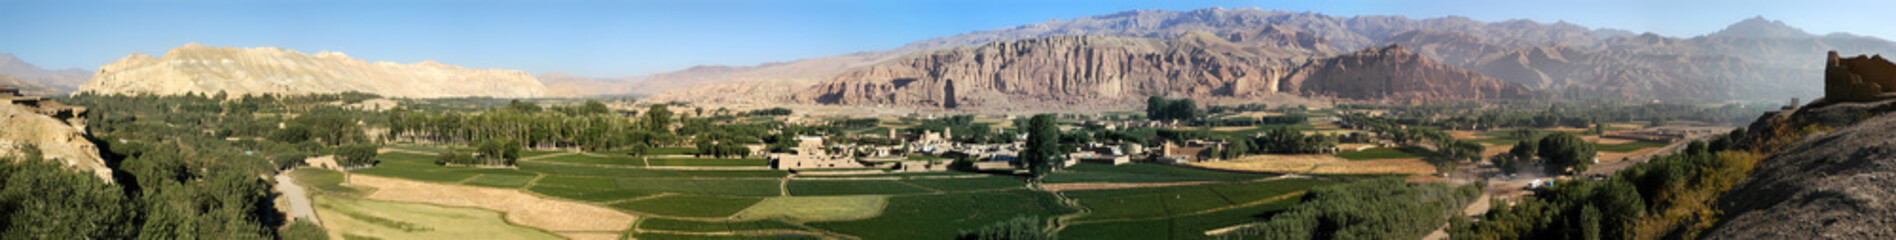 Very large panorama (49MP) of Bamyan (Bamiyan) in Central Afghanistan. This is a view over the Bamyan (Bamiyan) Valley showing both Buddha niches in the cliff. UNESCO site: Afghanistan Buddhas.